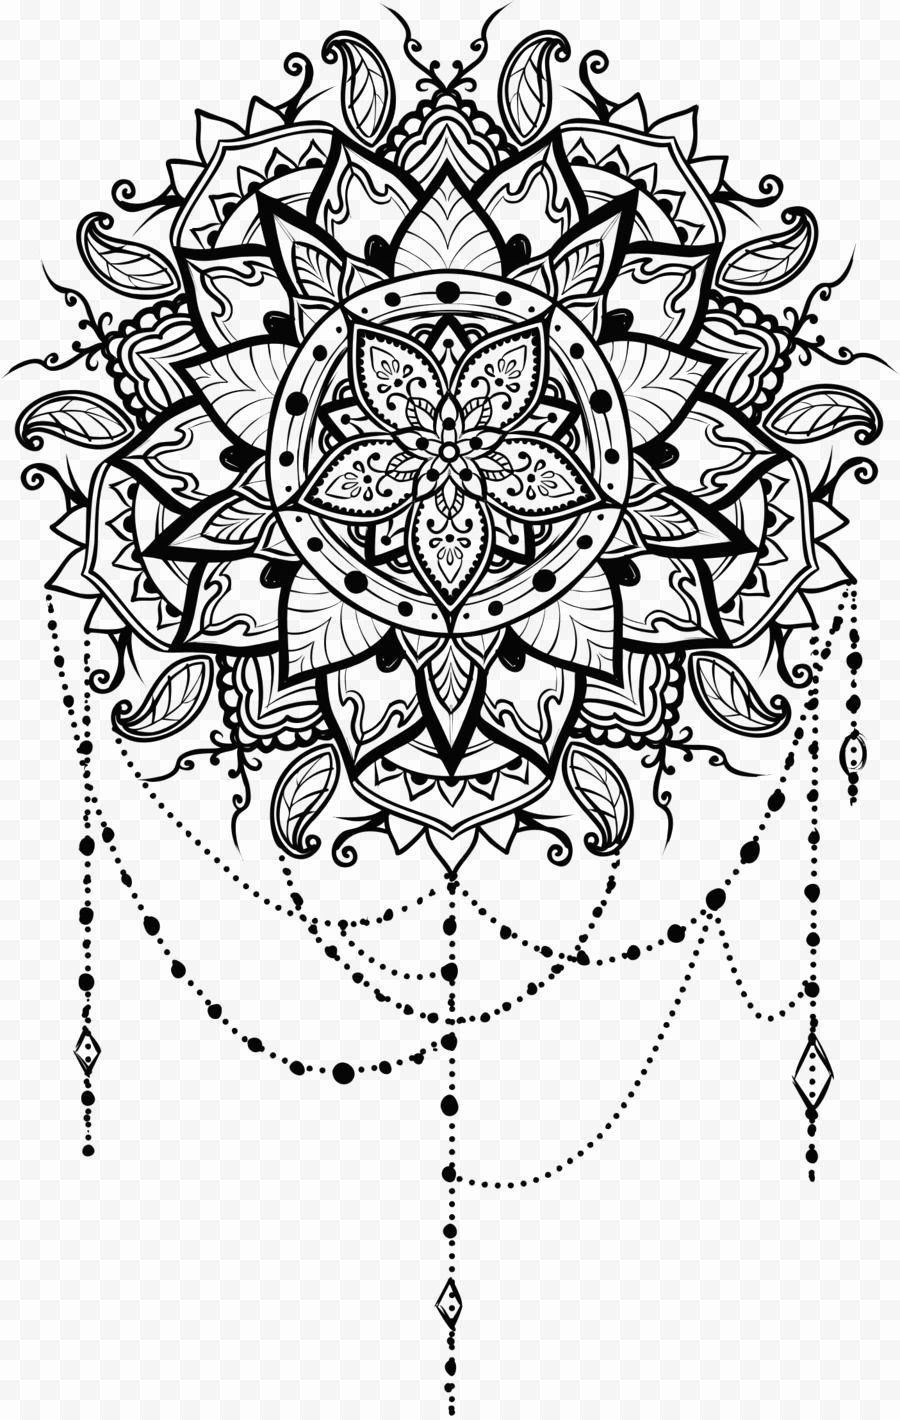 Coloring Book For Me And Mandala New Line Art Mandala Drawing Ornament Om Mandala Tattoo Design Mandala Coloring Books Geometric Tattoo